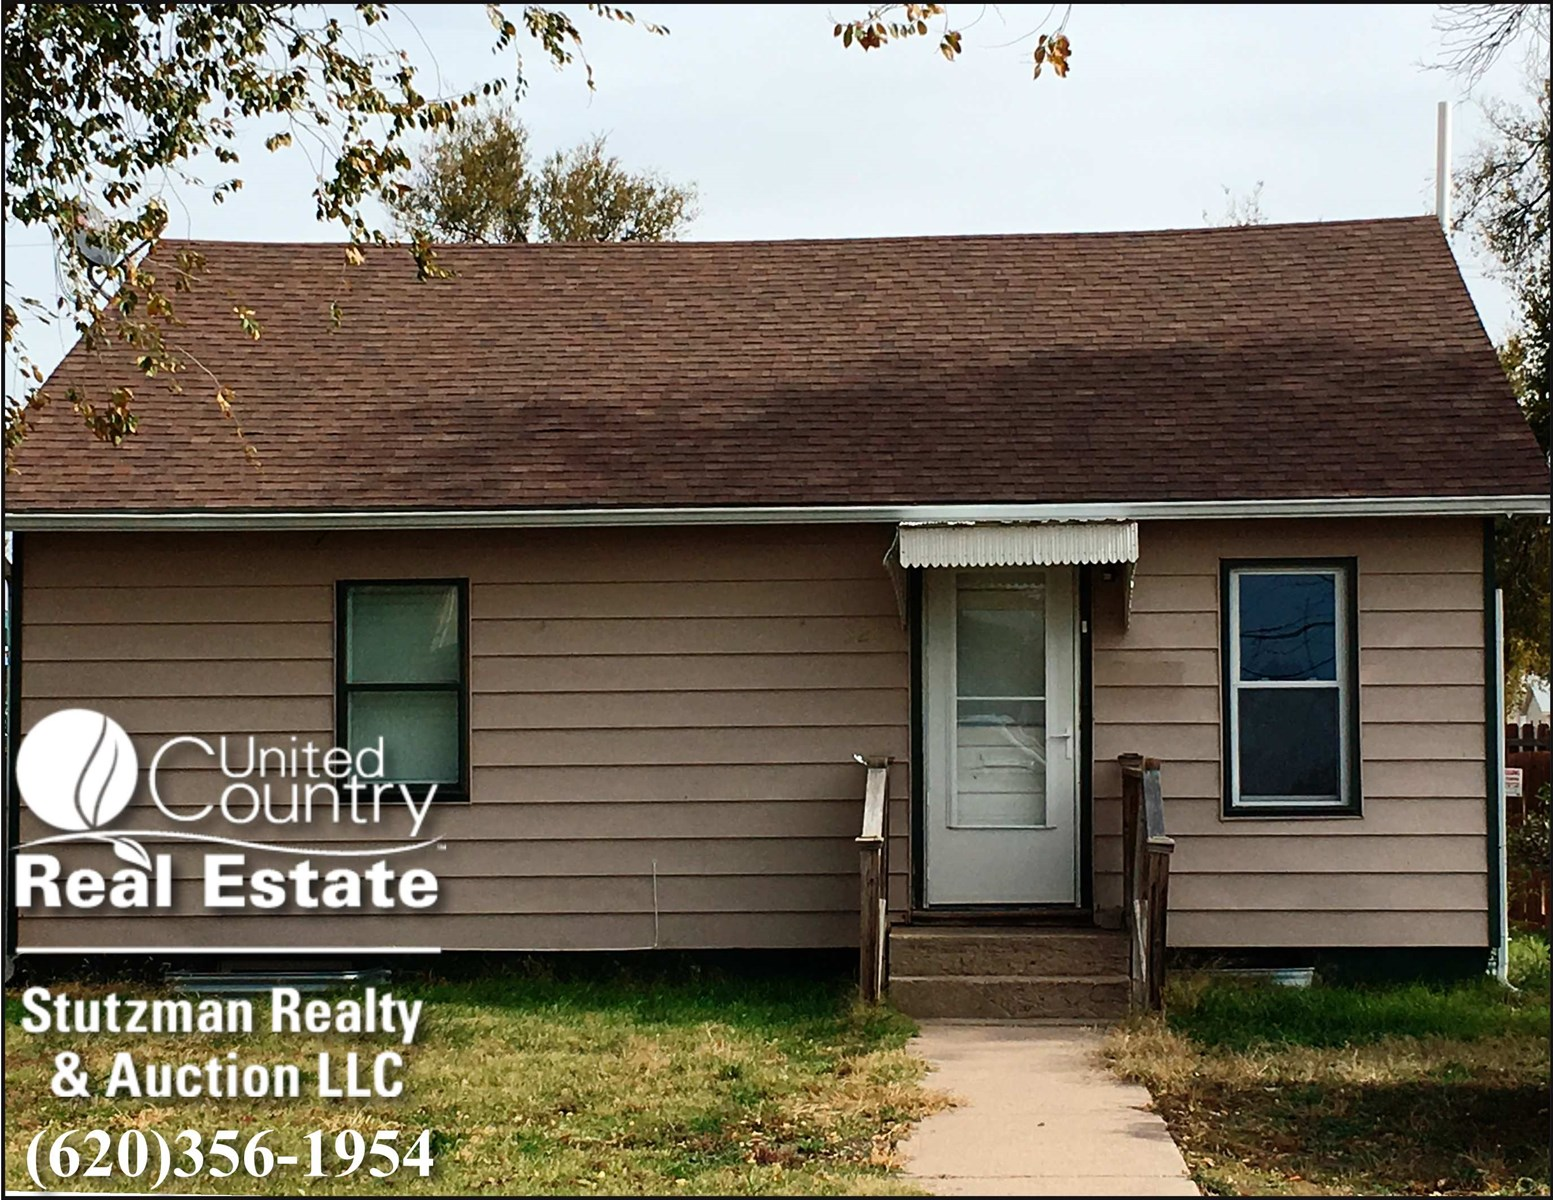 AFFORDABLE THREE BEDROOM HOME FOR SALE IN ULYSSES, KANSAS